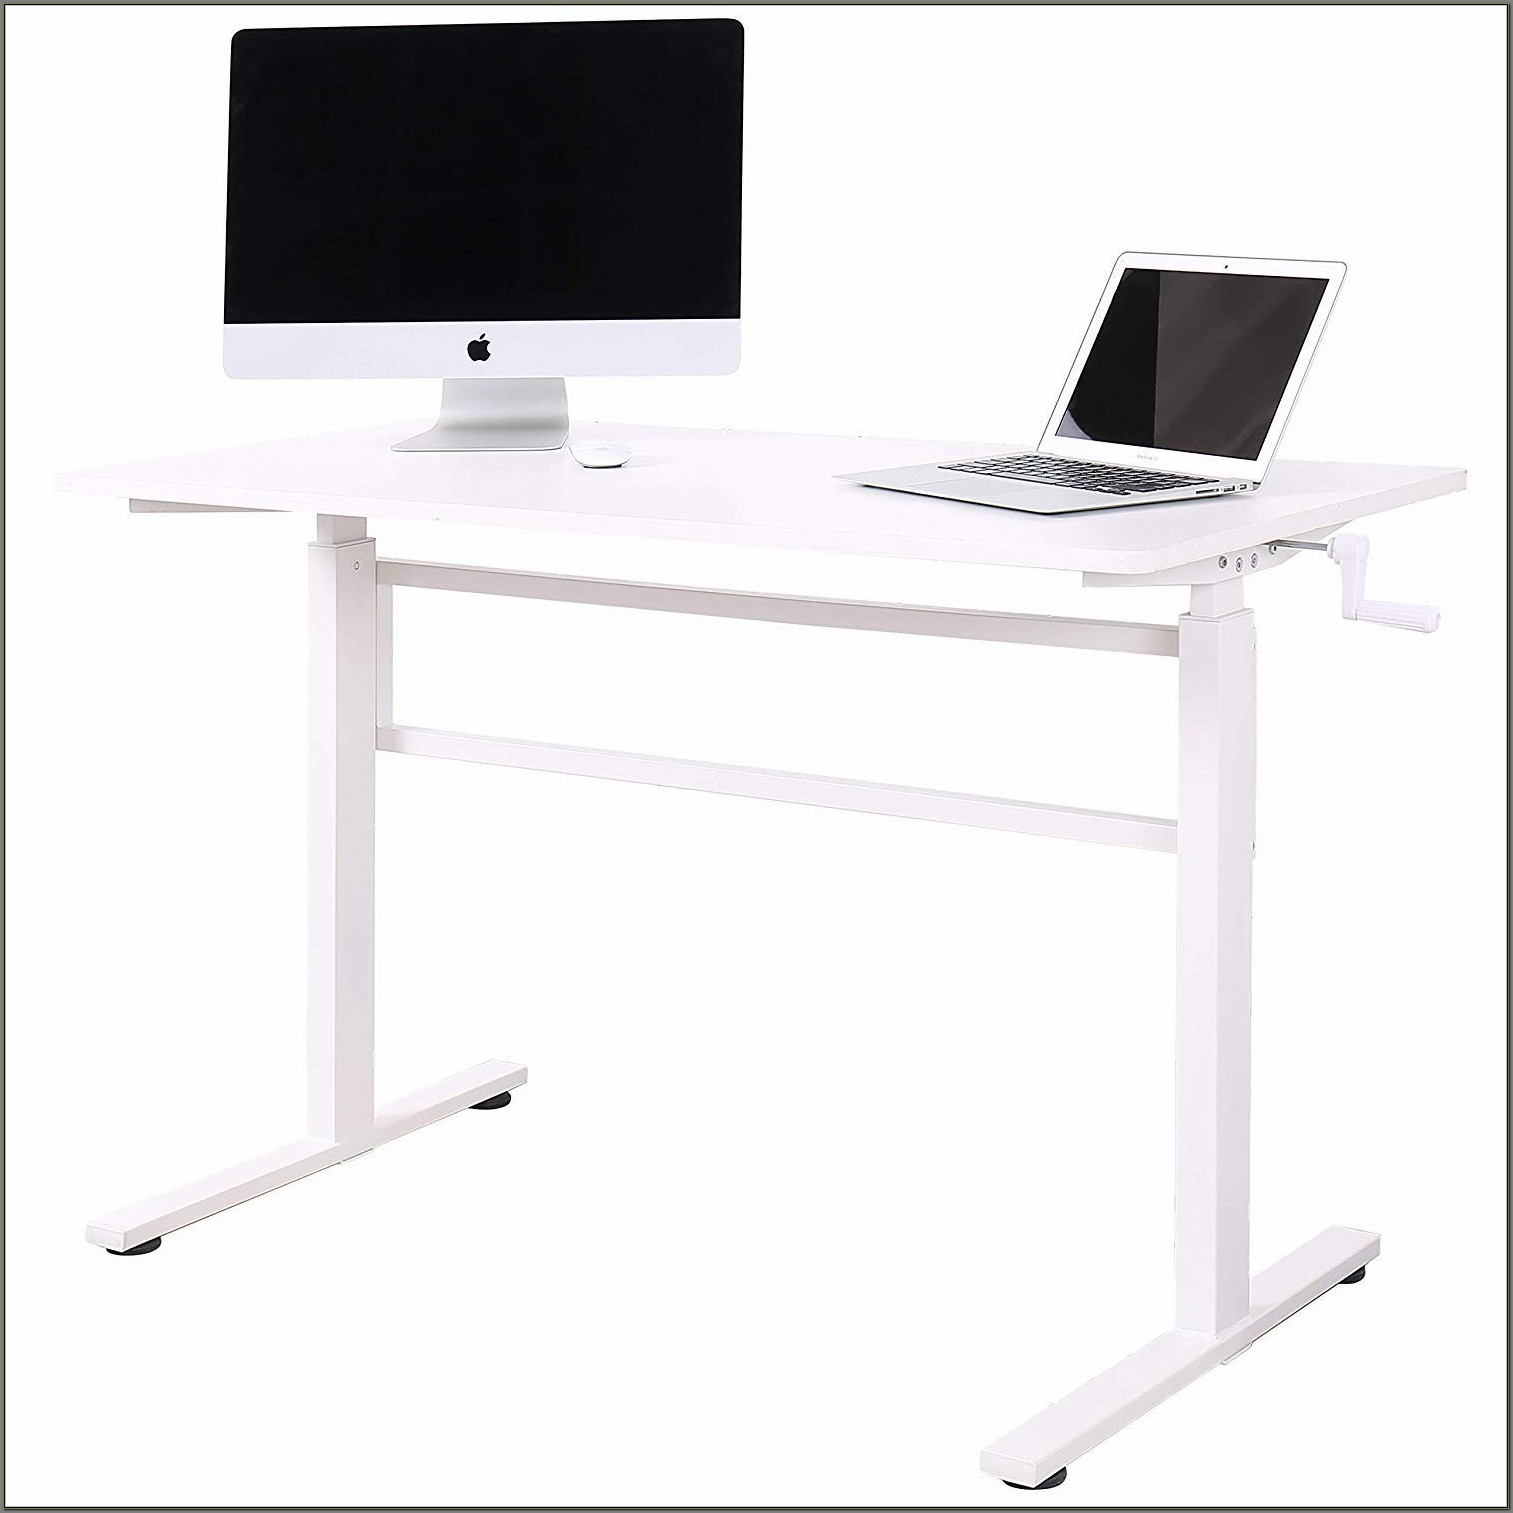 Adjustable Height Desk Crank